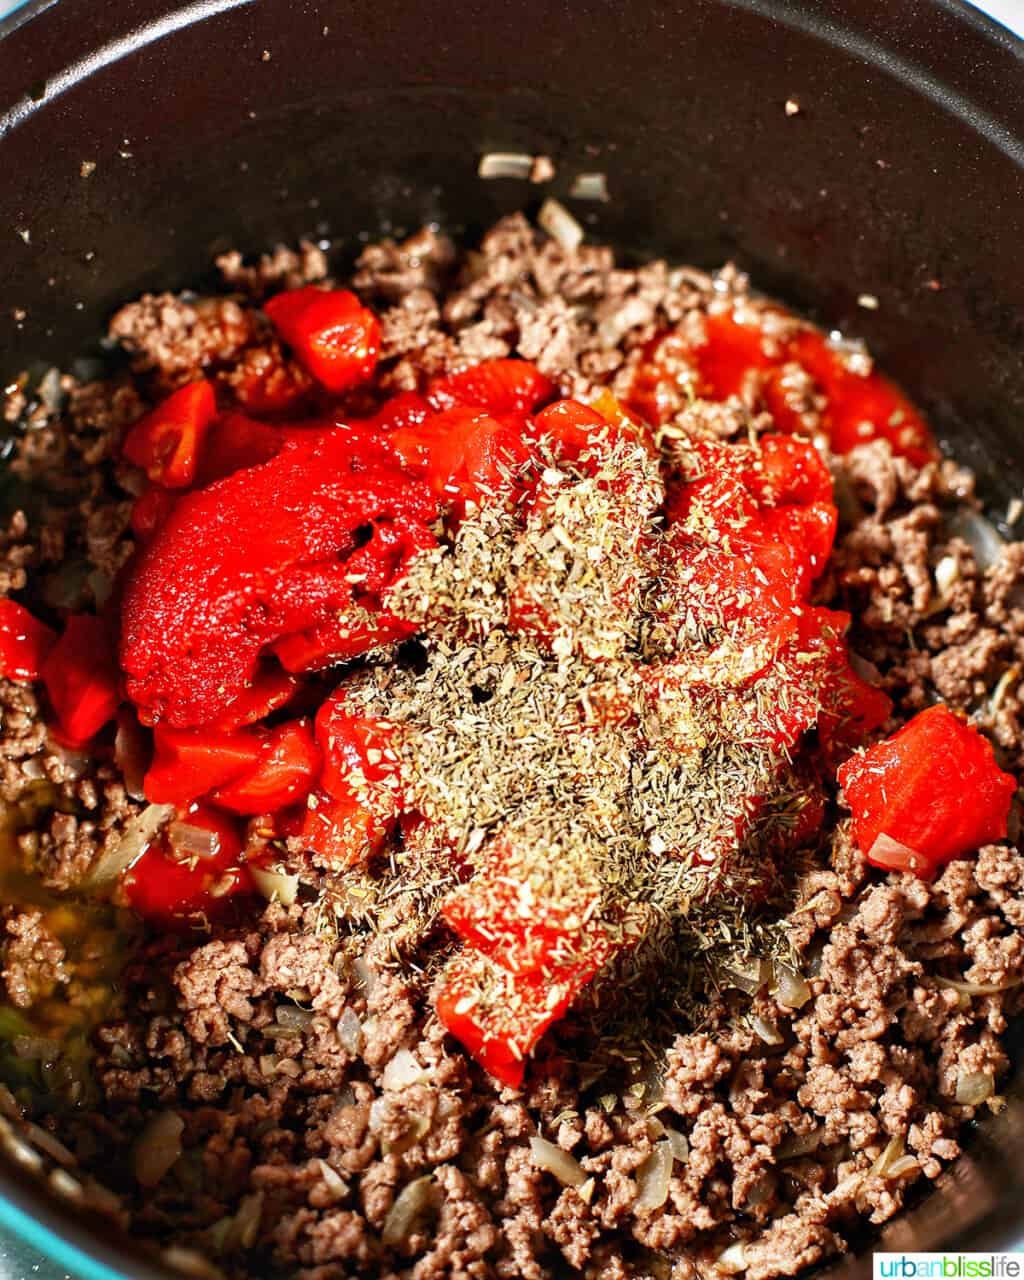 adding tomato paste and herbs to ground beef